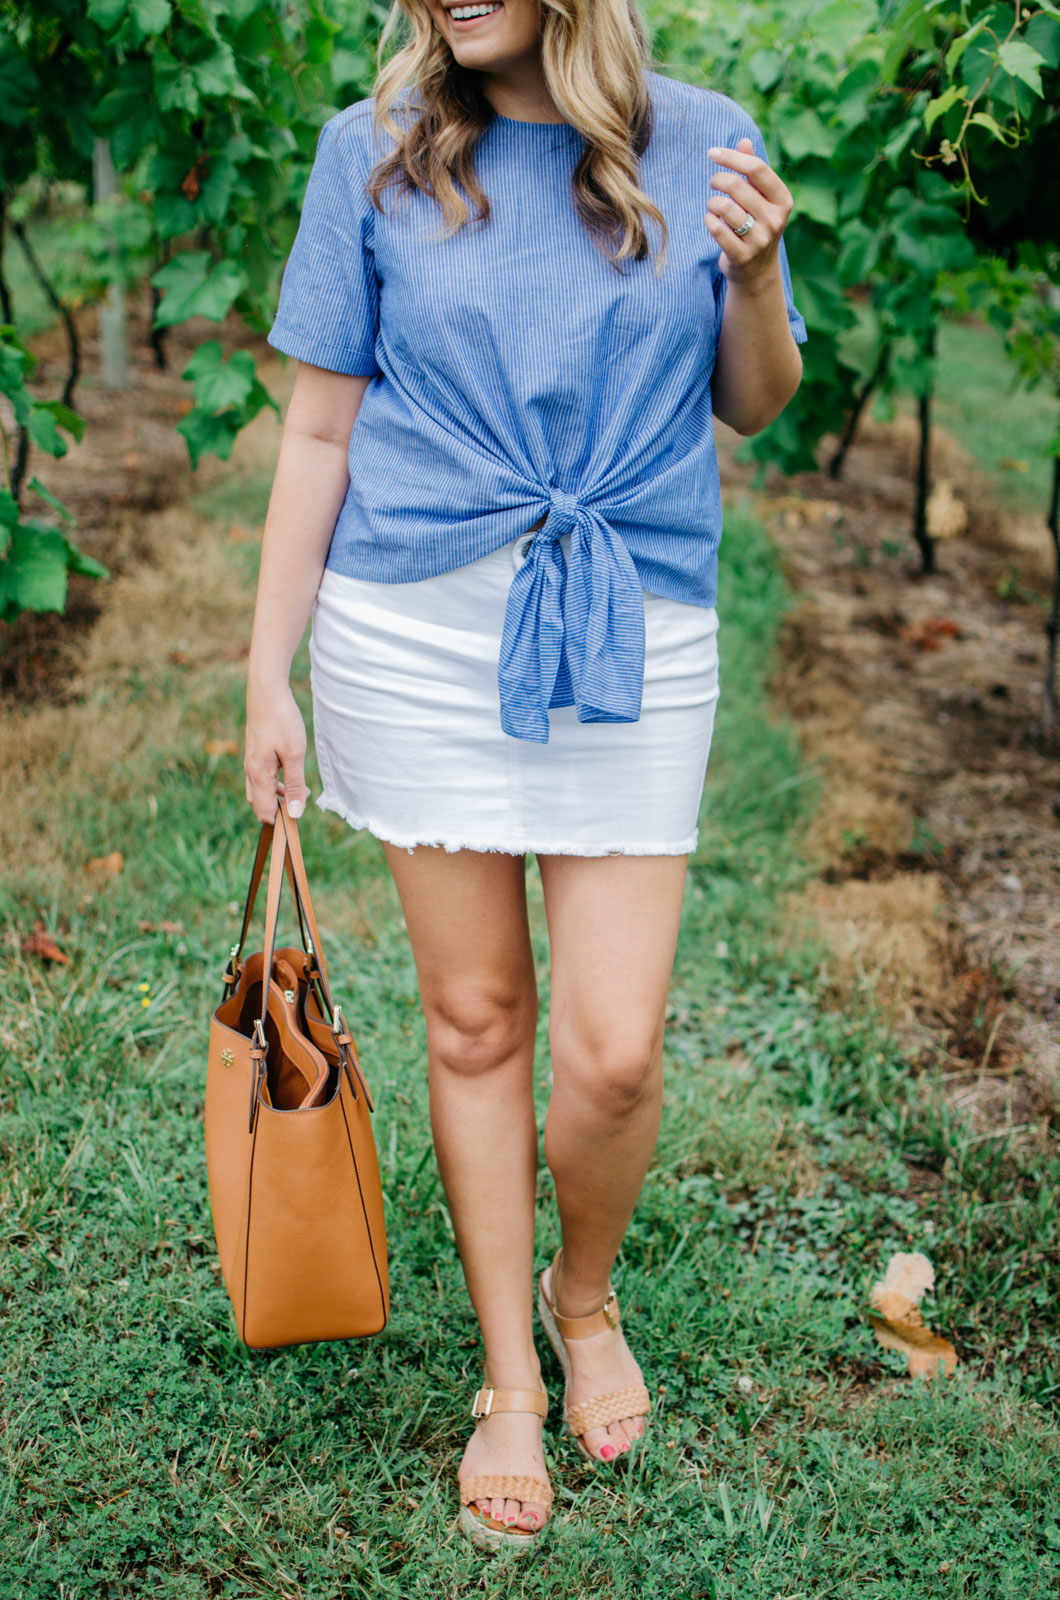 cutest summer style - tie front top and denim mini   Want more cute Summer outfits? Head to bylaurenm.com!